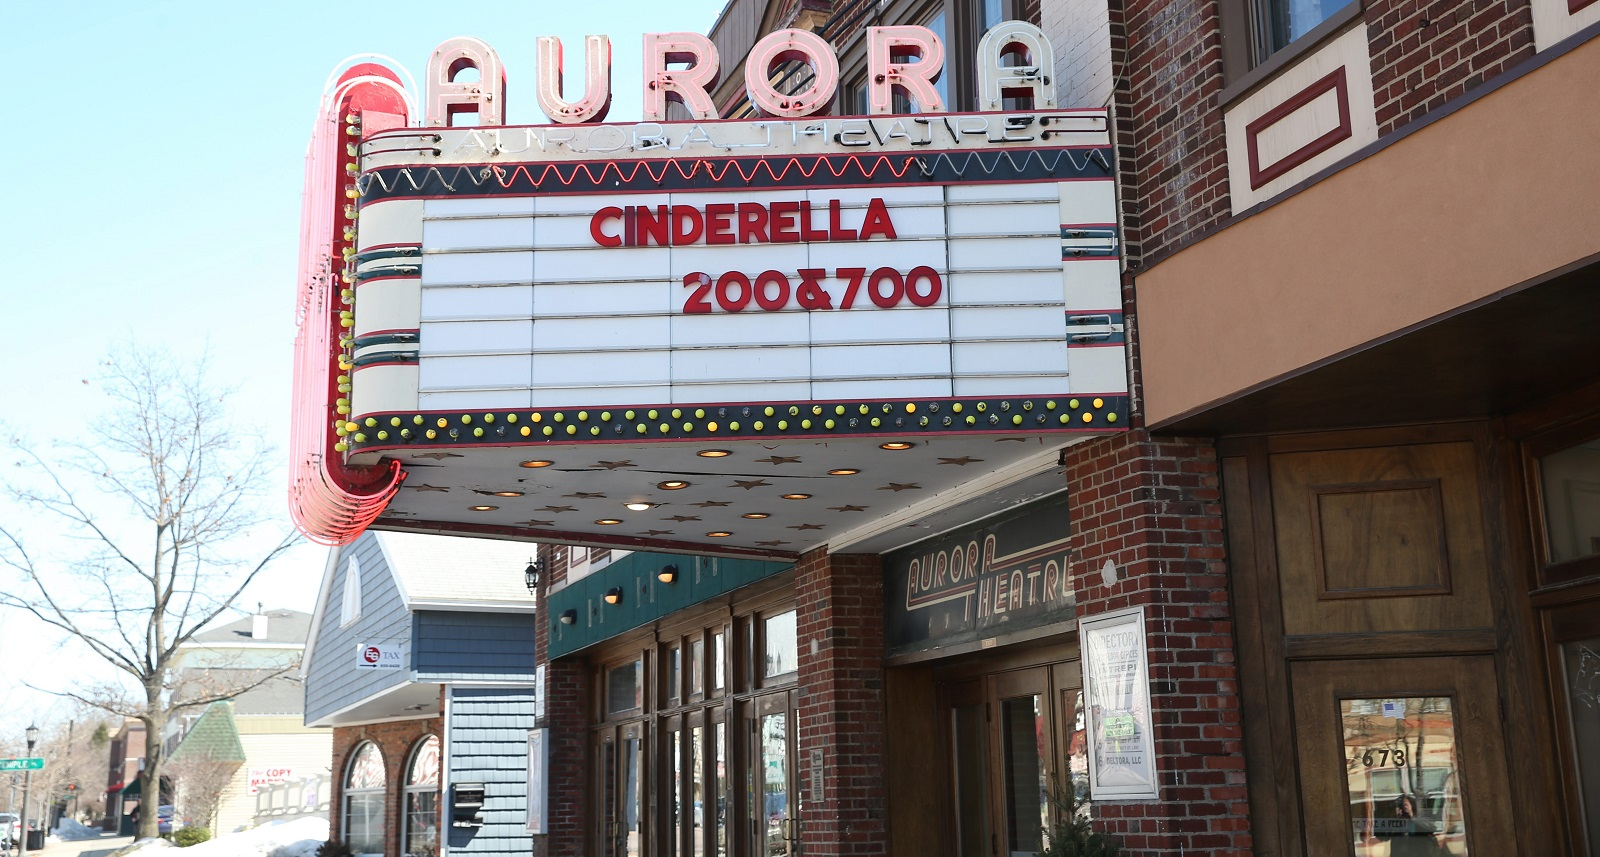 The Aurora Theatre has announced its lineup of free summer movies. (Sharon Cantillon/Buffalo News file photo)